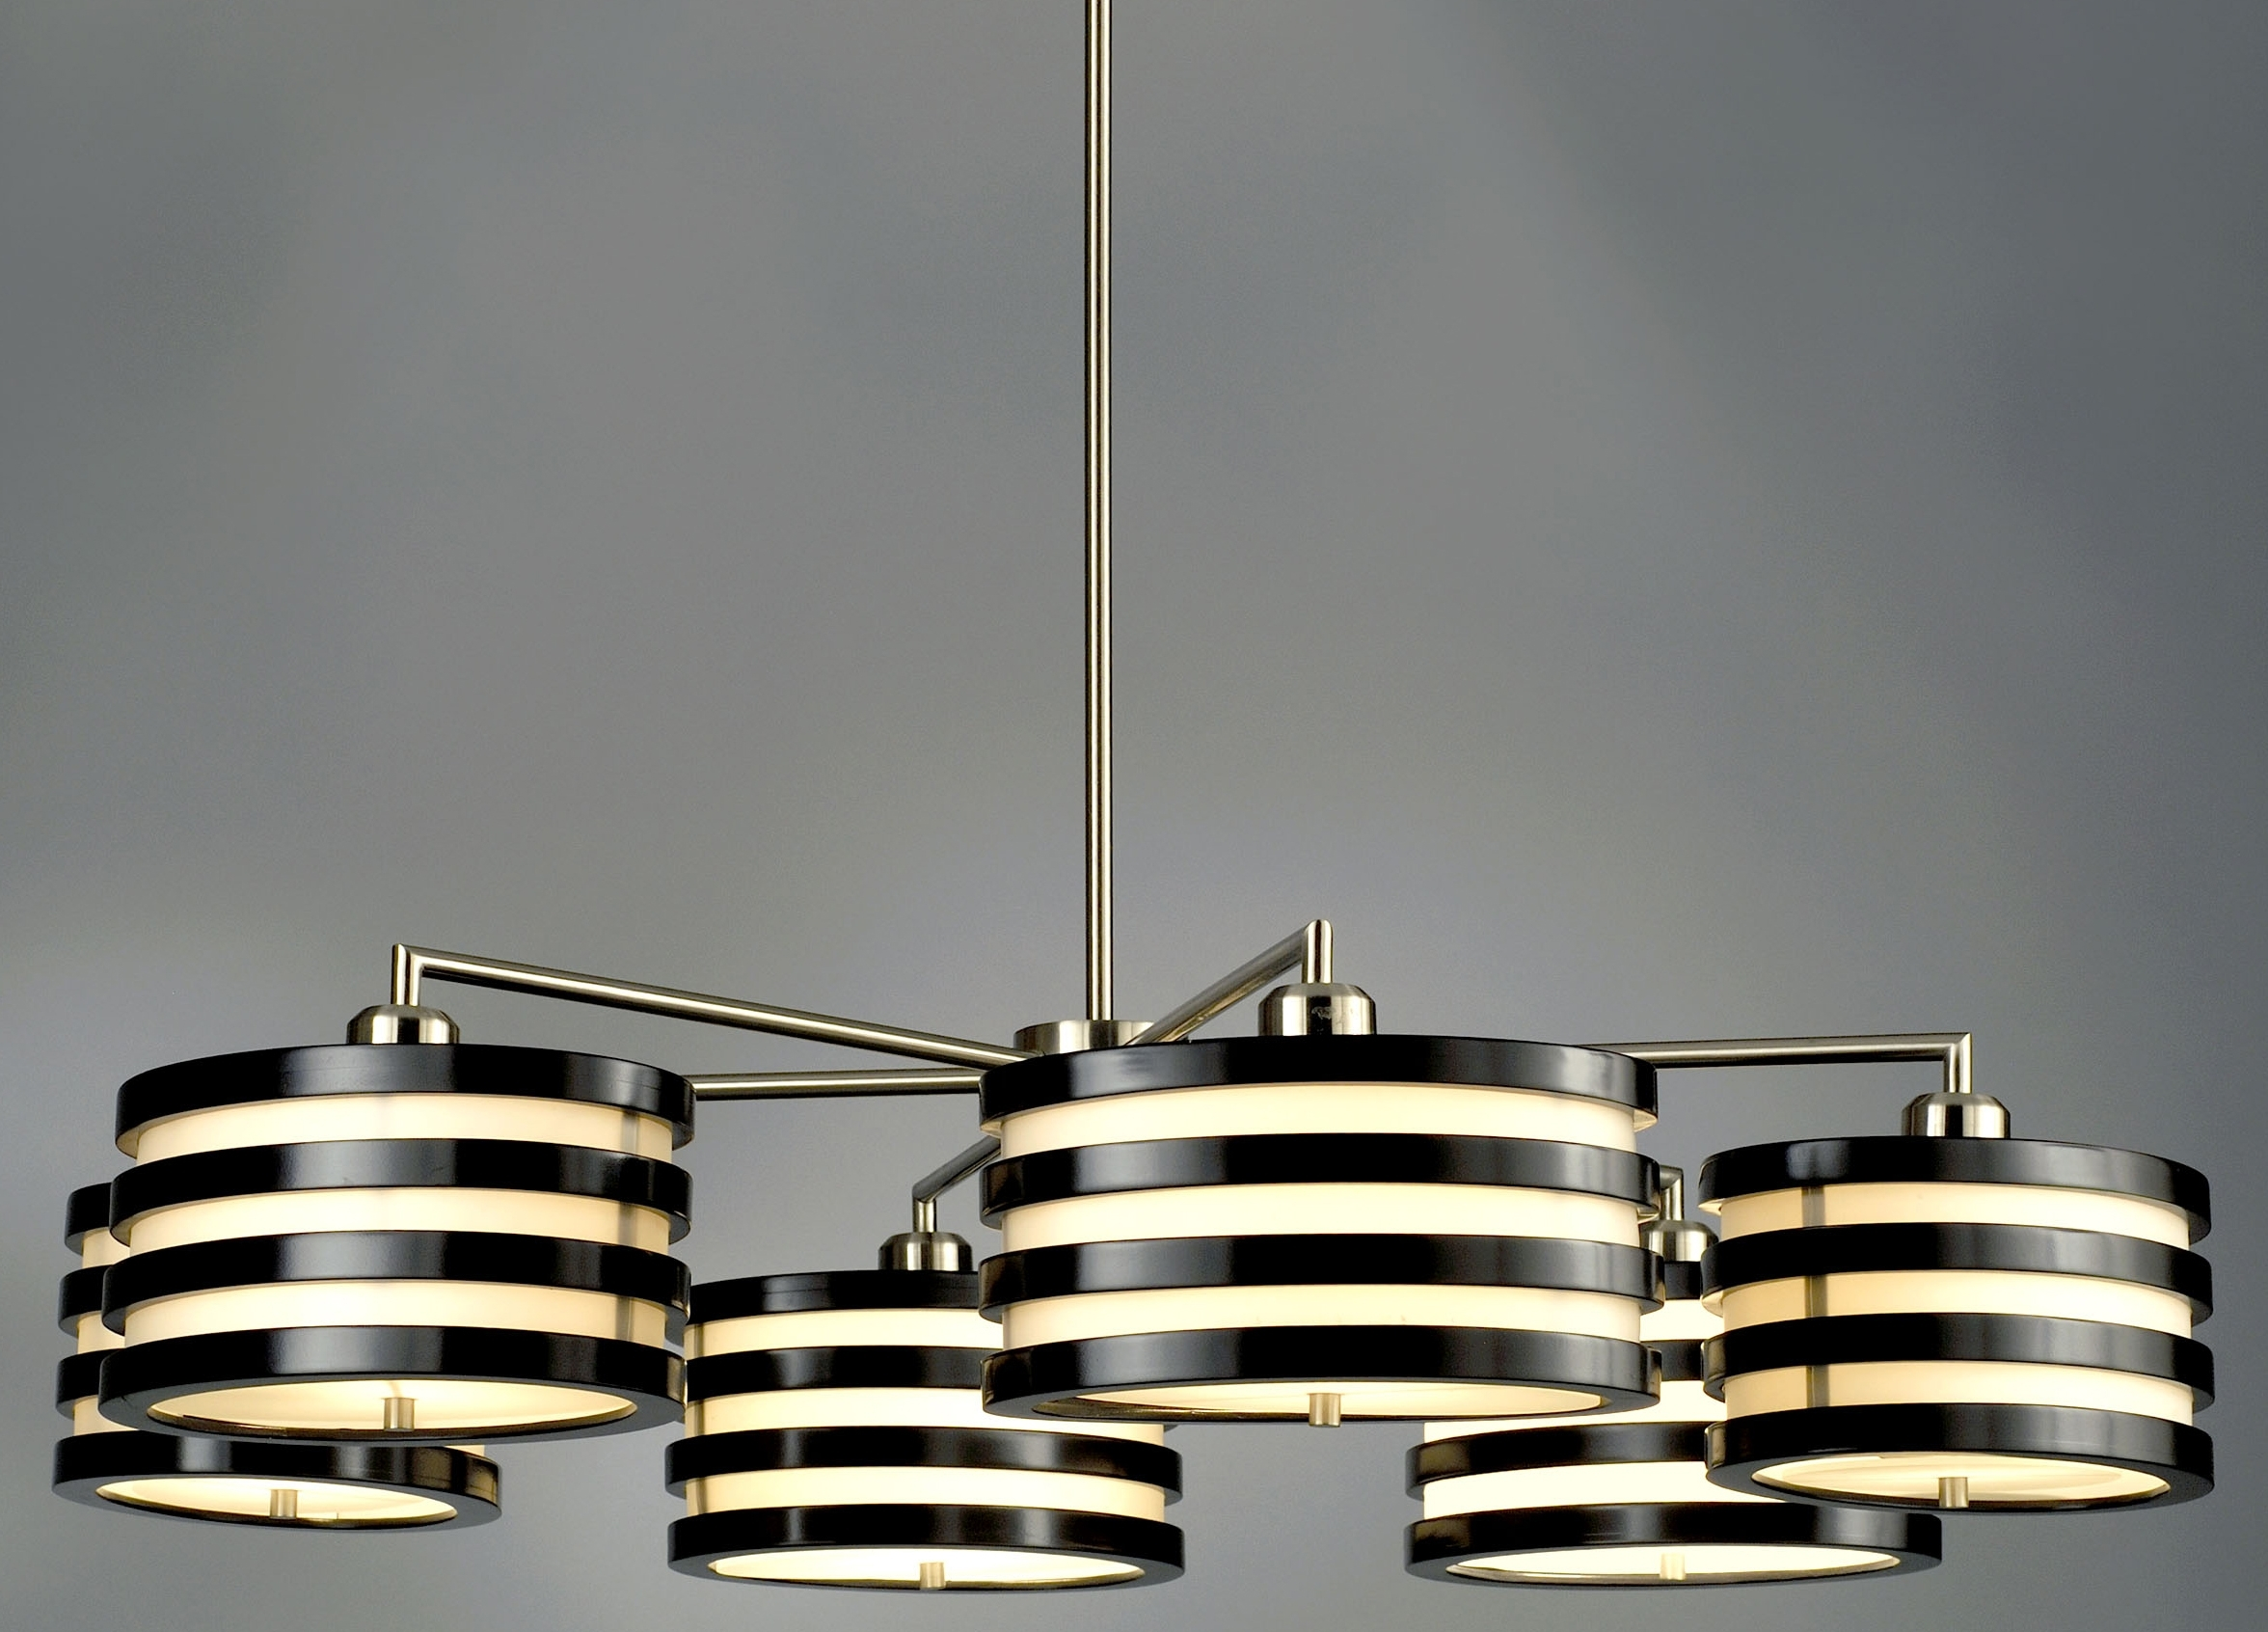 Most Recently Released Contemporary Modern Chandeliers In Home Decor + Home Lighting Blog » Blog Archive » Nova Lighting Kobe (View 11 of 15)